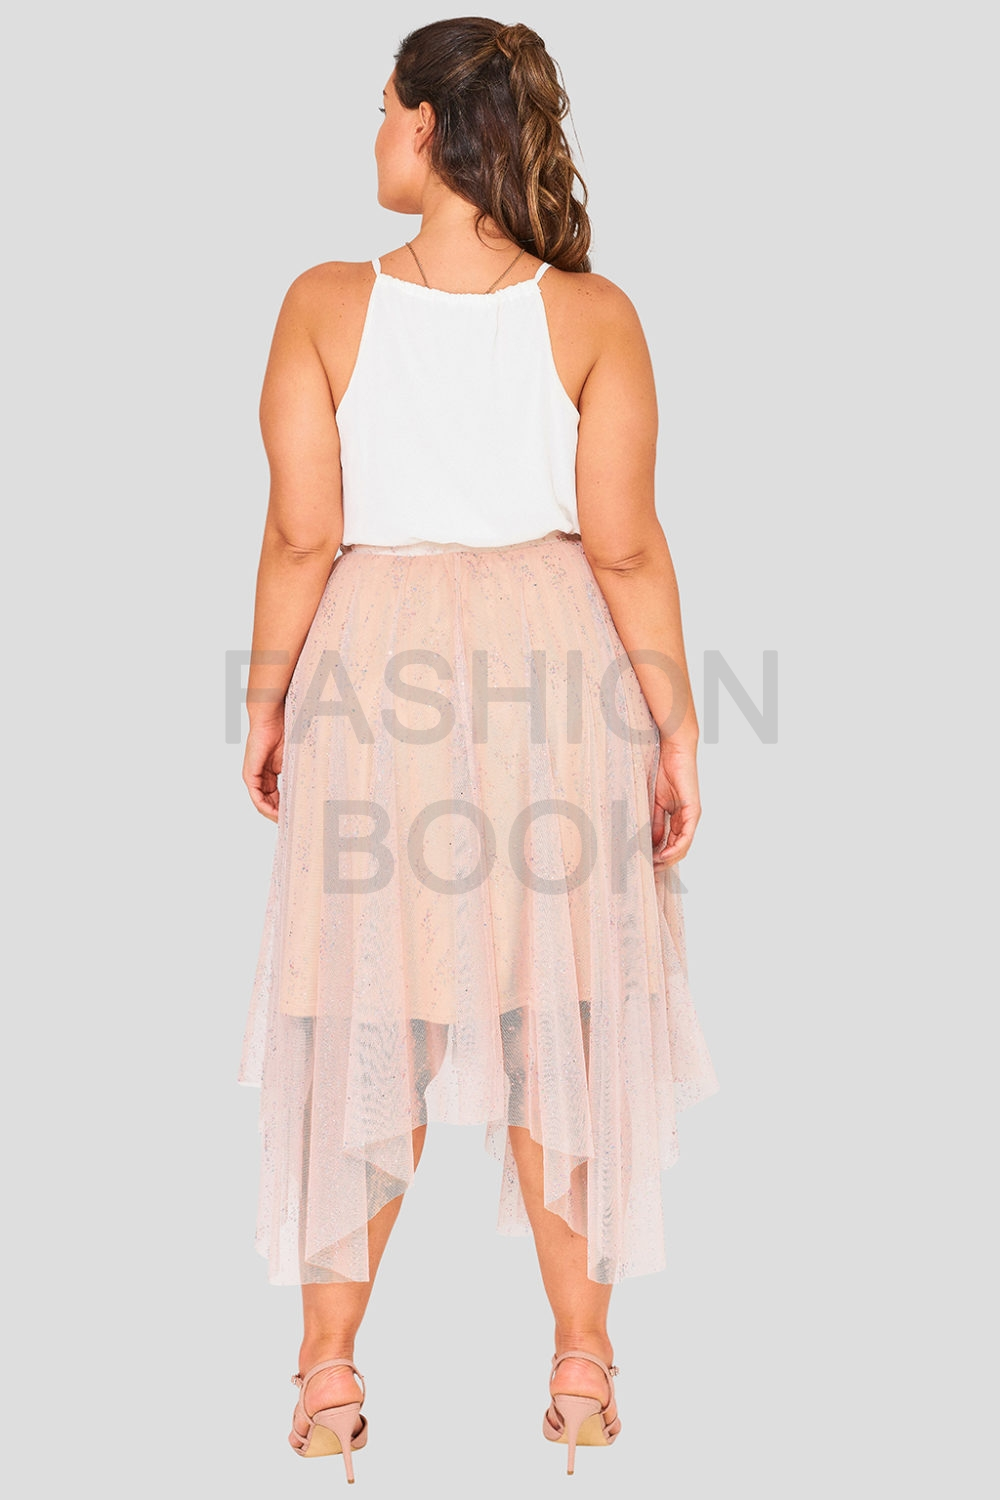 Wholesale Pink Mesh Plus Size Metallic Skirt